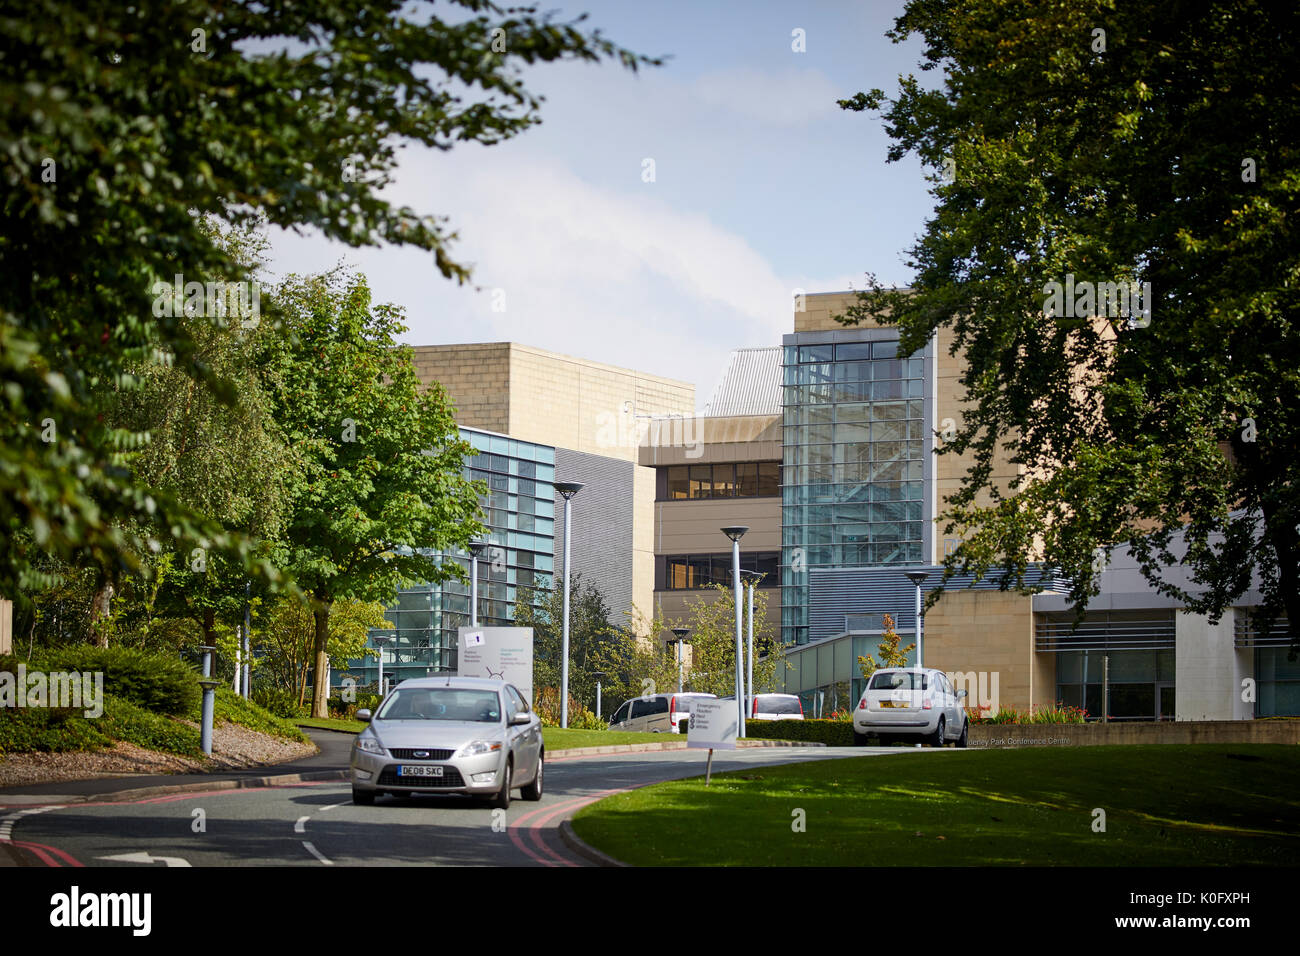 Alderley Park in Nether Alderley, Cheshire, formerly an AstraZeneca facility and now owned by Bruntwood. - Stock Image